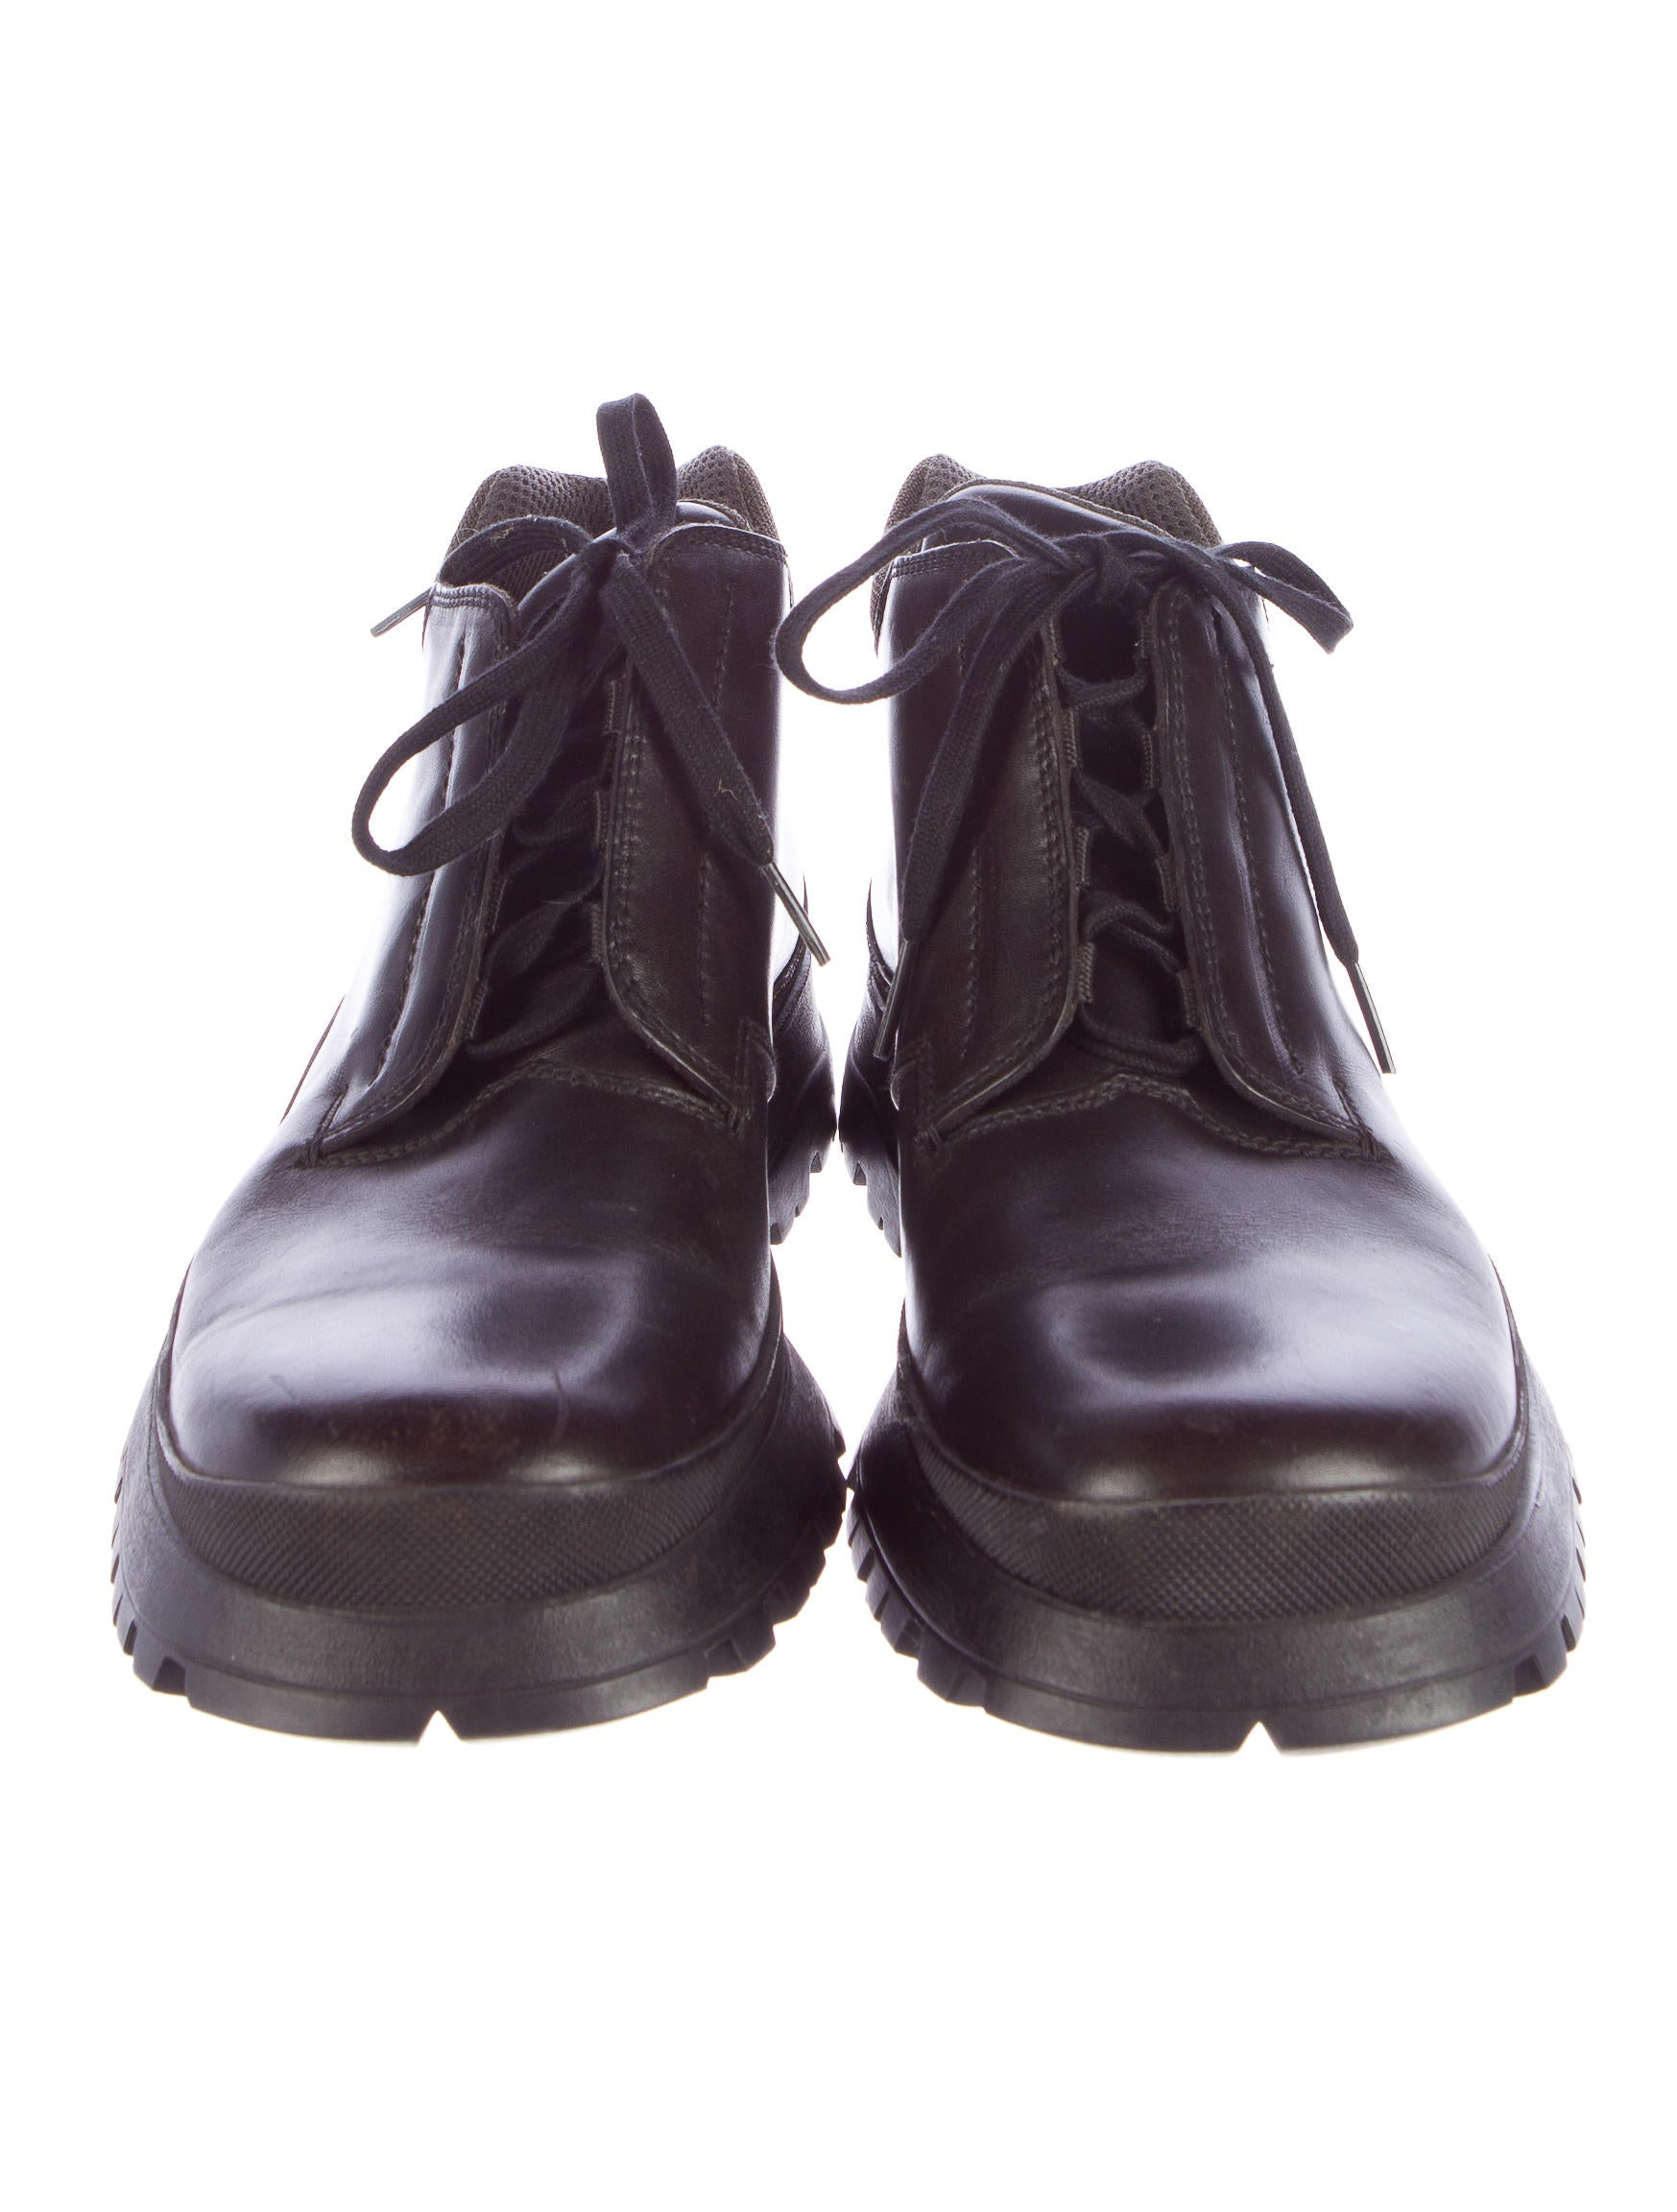 prada leather and rubber boots shoes pra102866 the